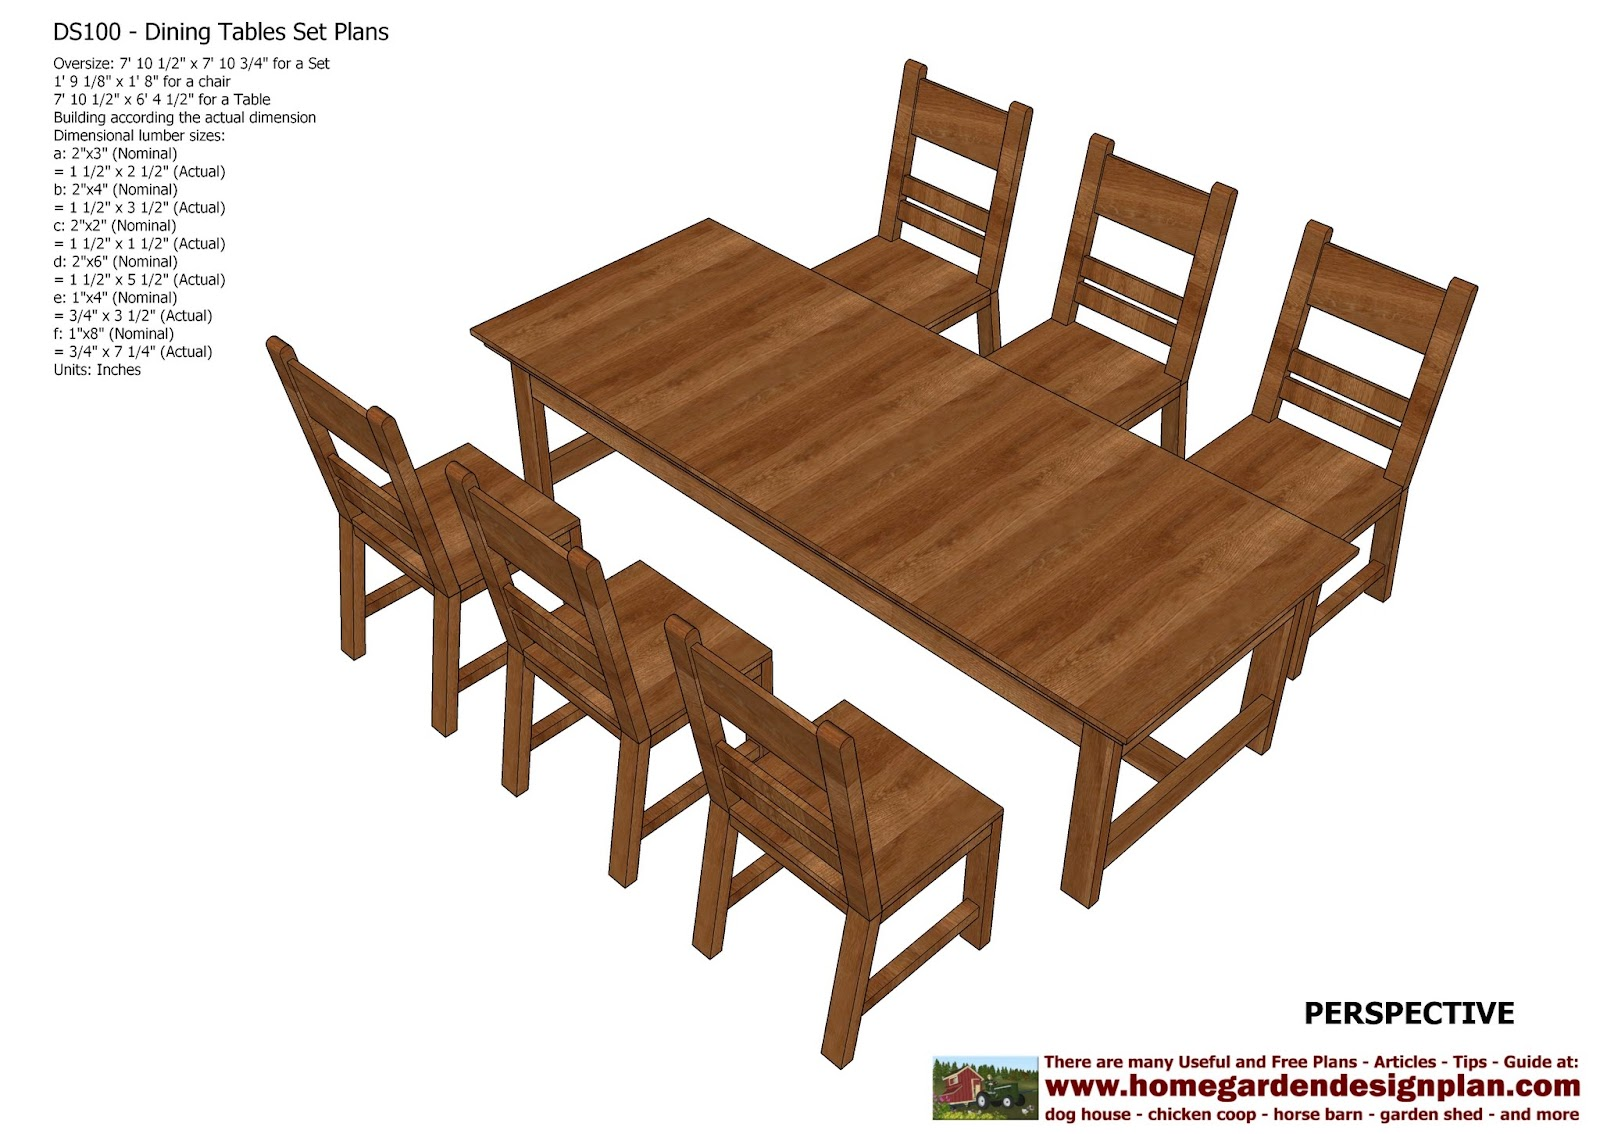 Home garden plans ds100 dining table set plans - Woodworking plans bedroom furniture ...